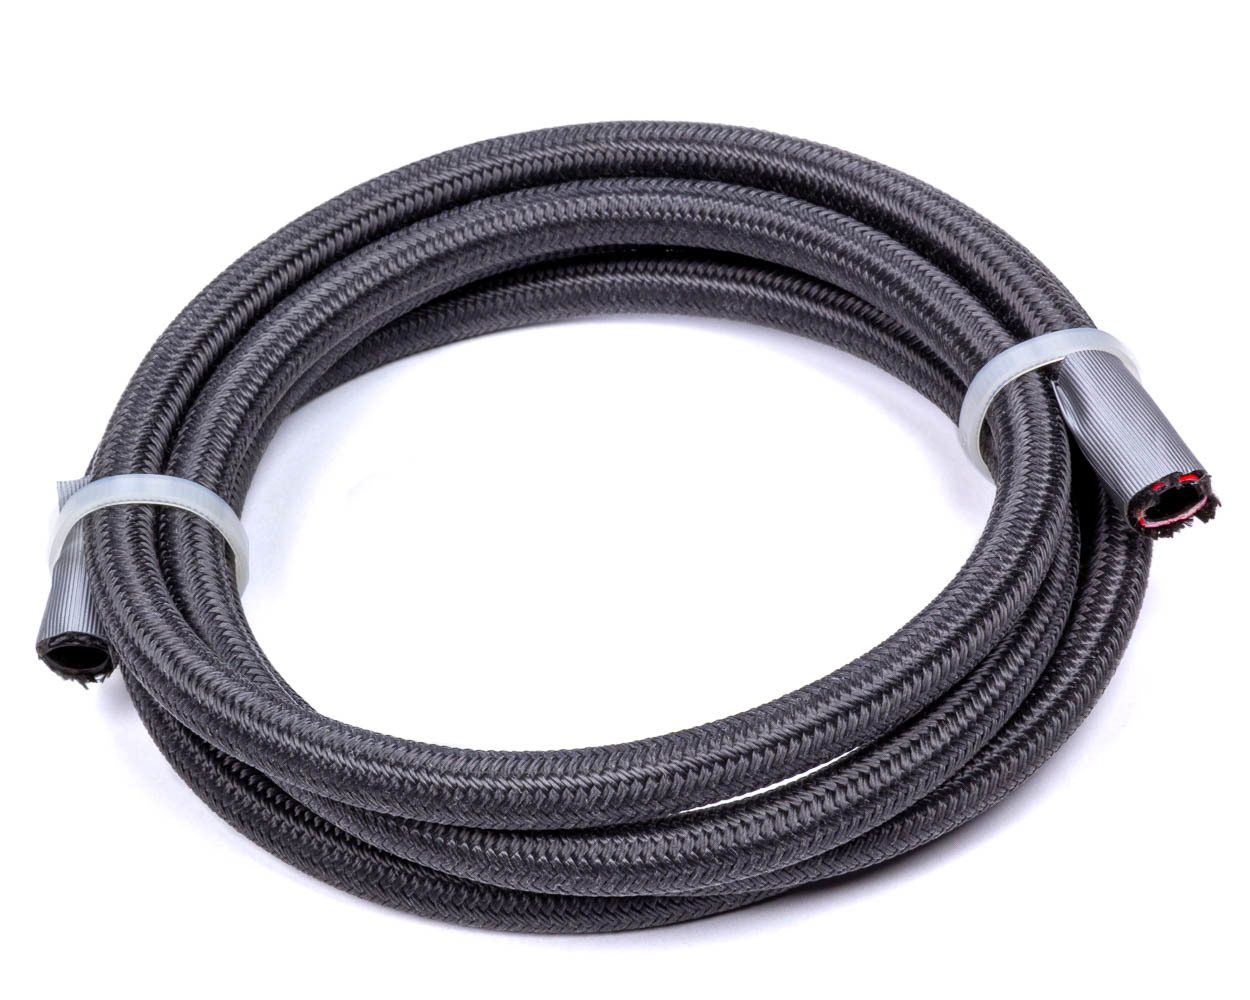 Fragola 2702004 Hose, Race-Rite, 4 AN, 20 ft, Braided Fire Retardant Fabric, PTFE, Black, Each